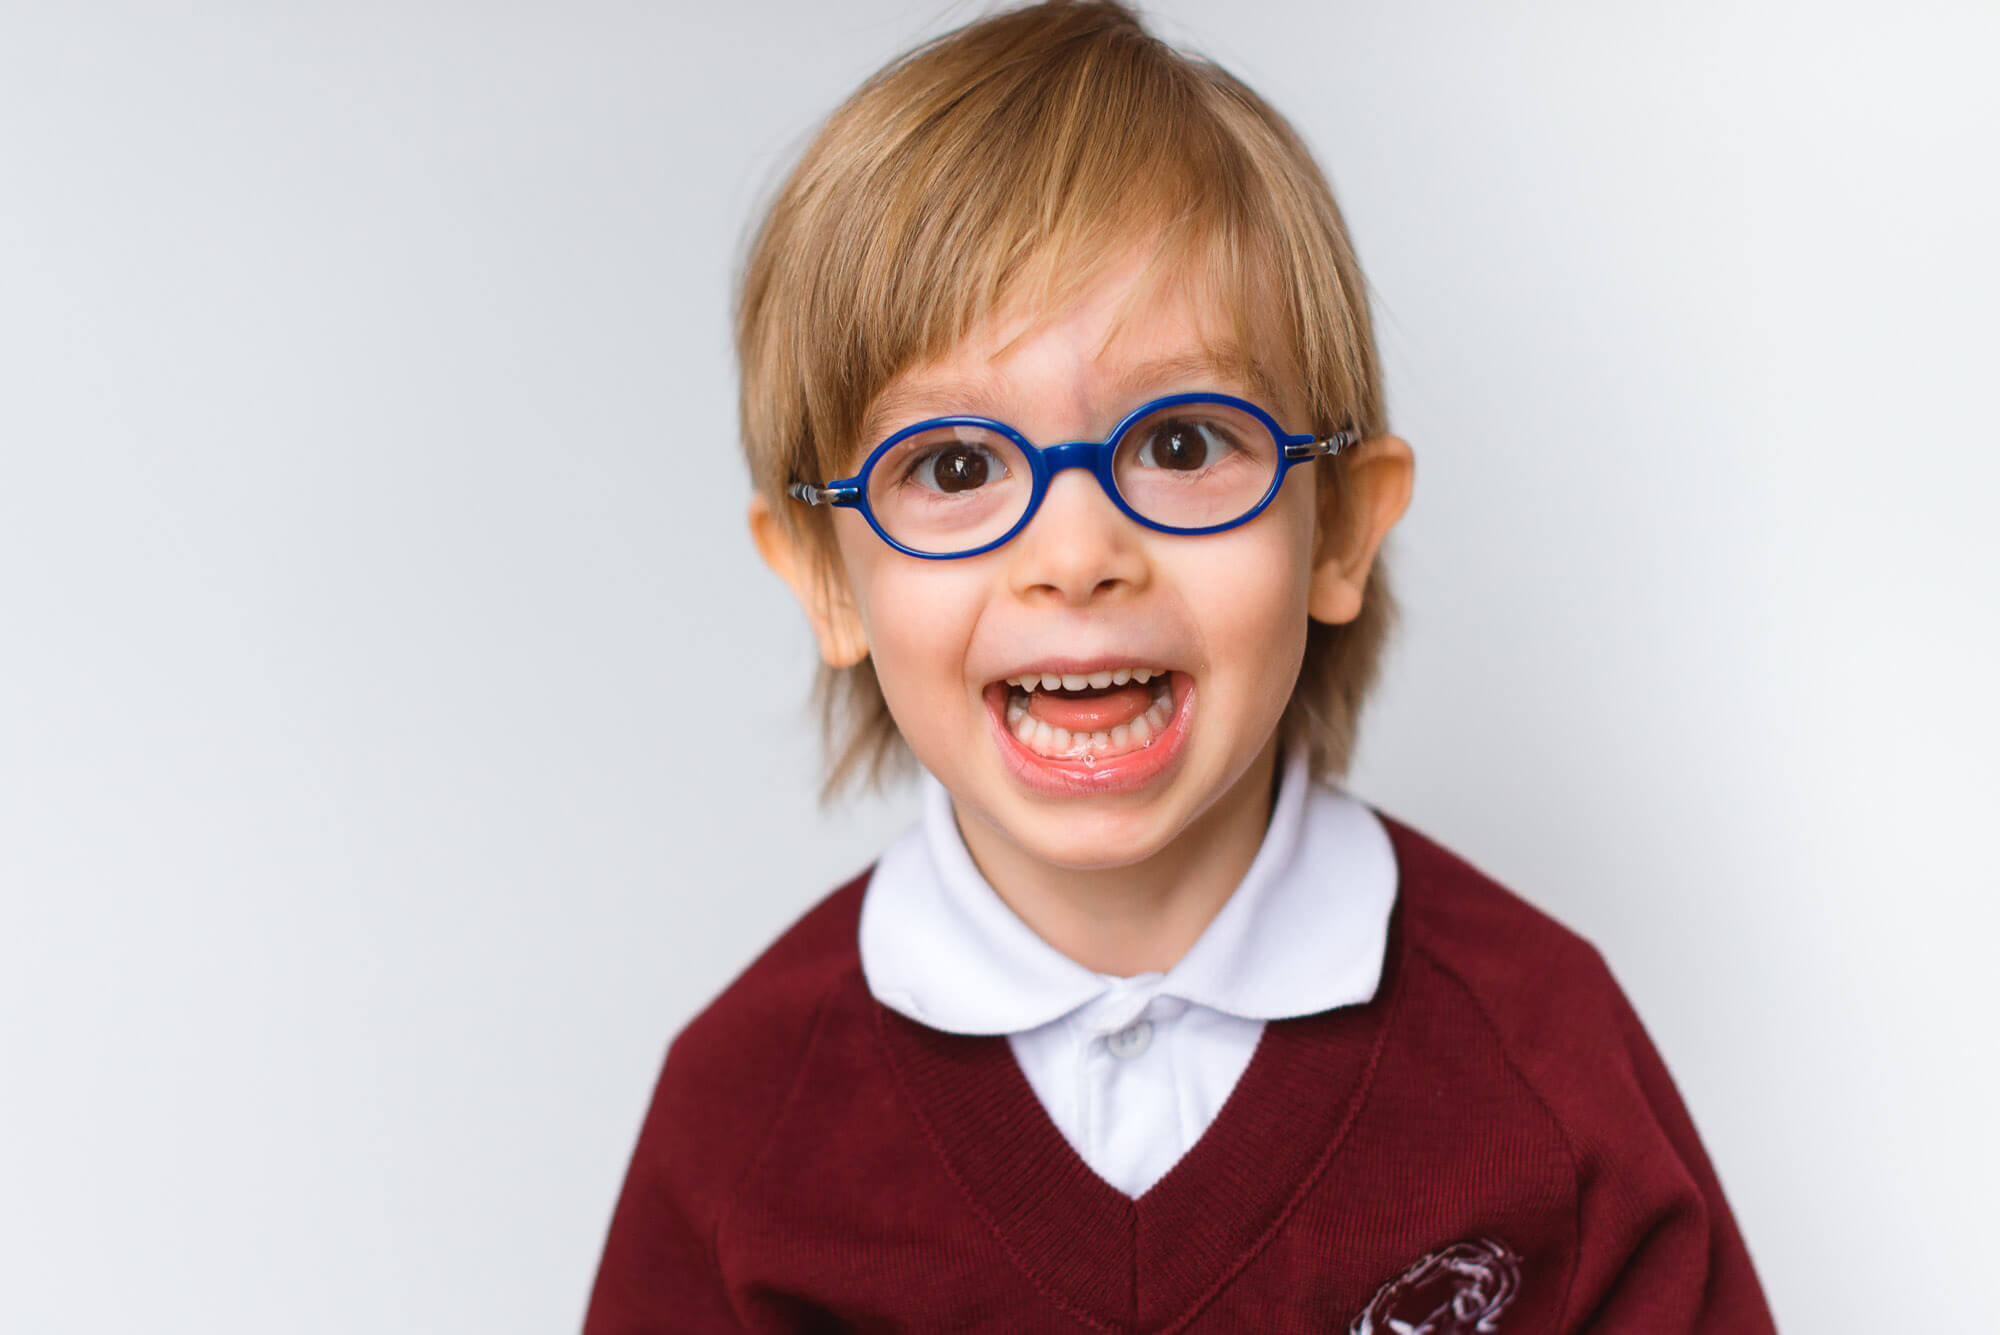 boutique school photography boy with blue glasses and big grin